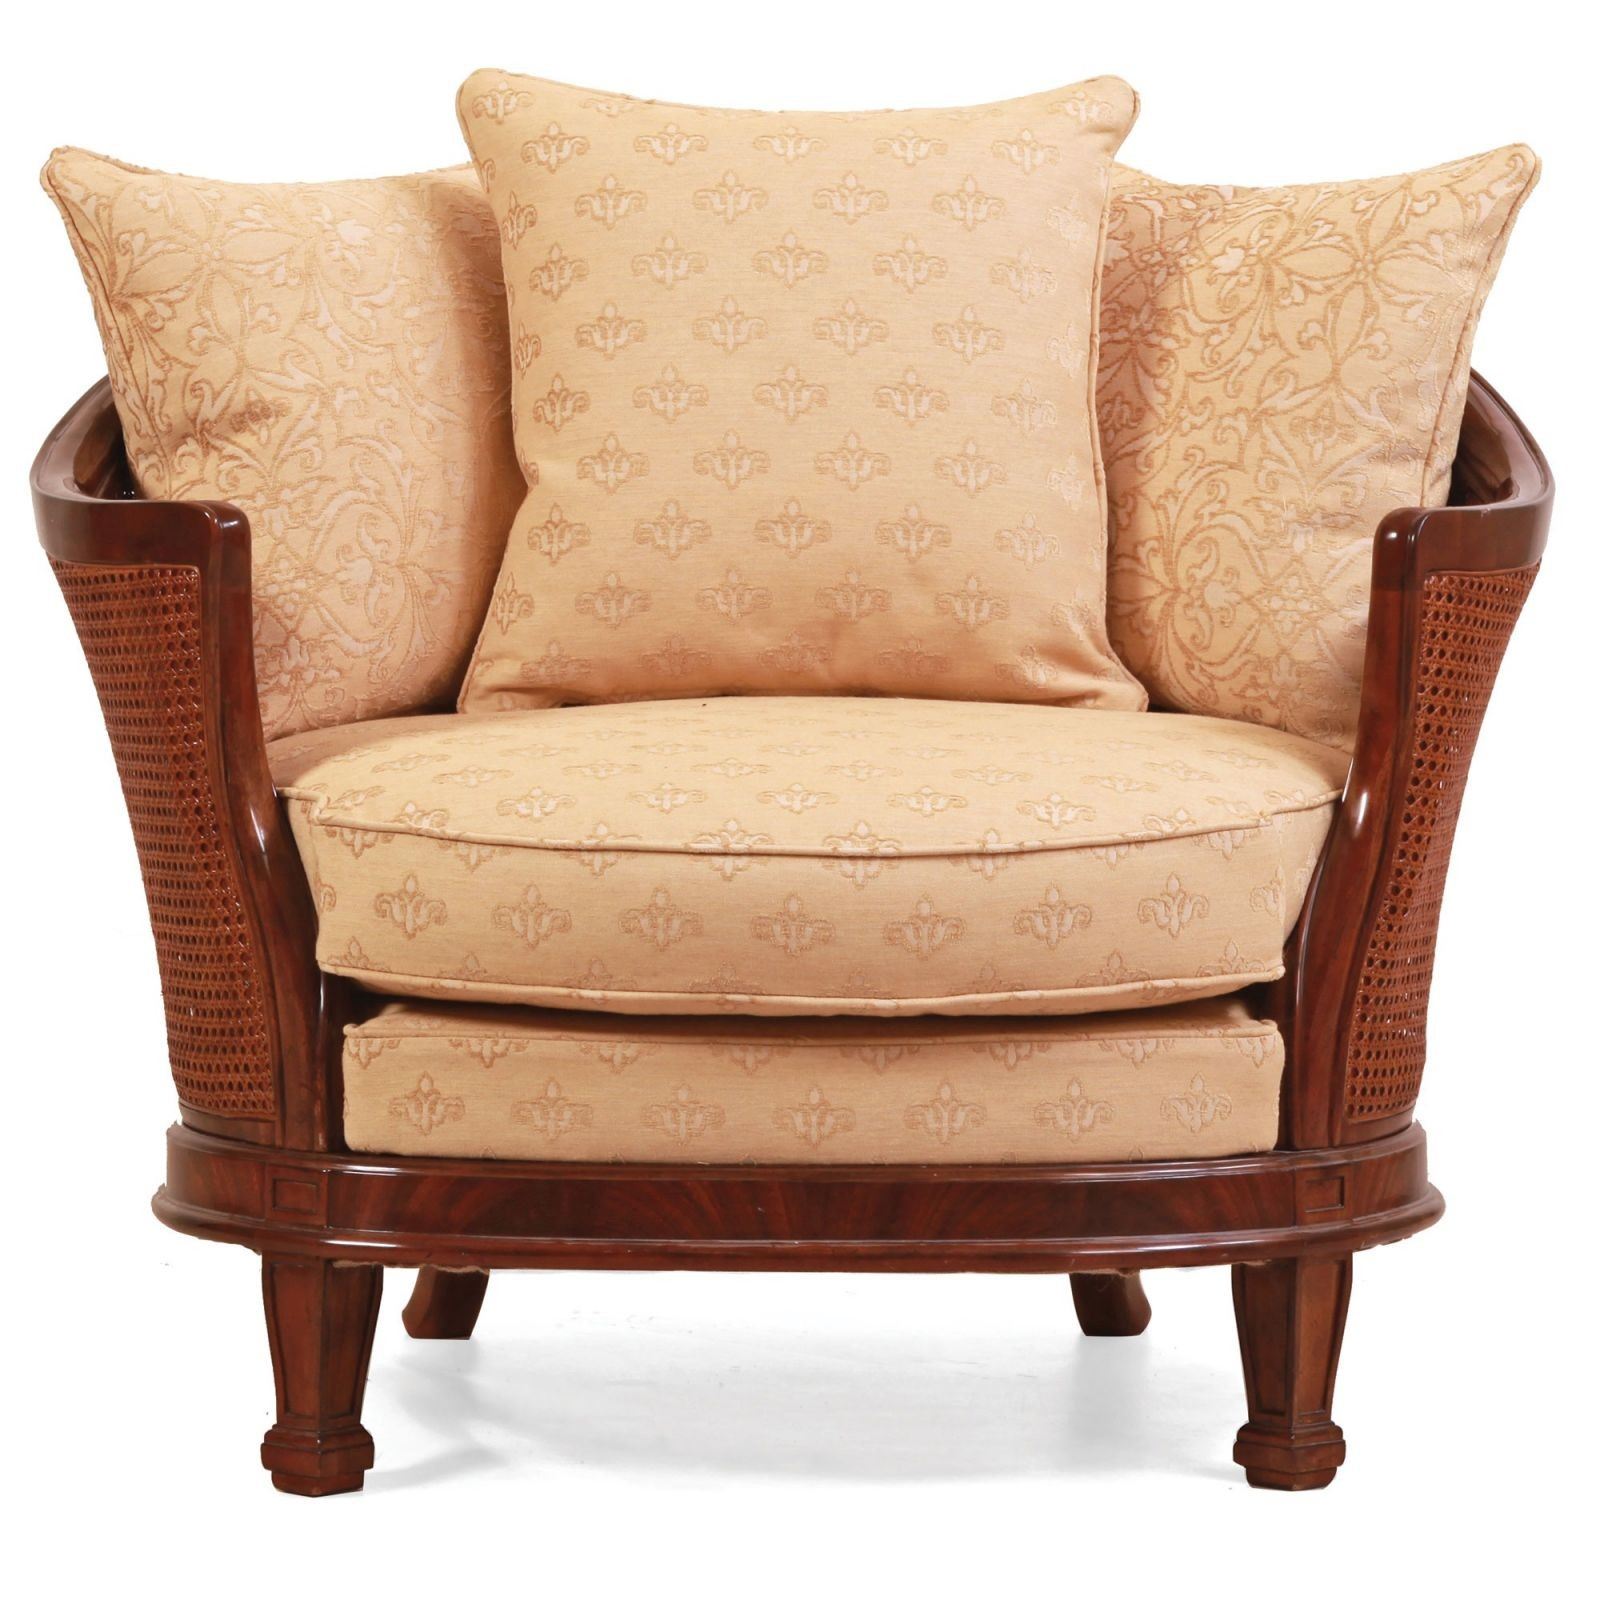 Mauretania Chair - Special Offer